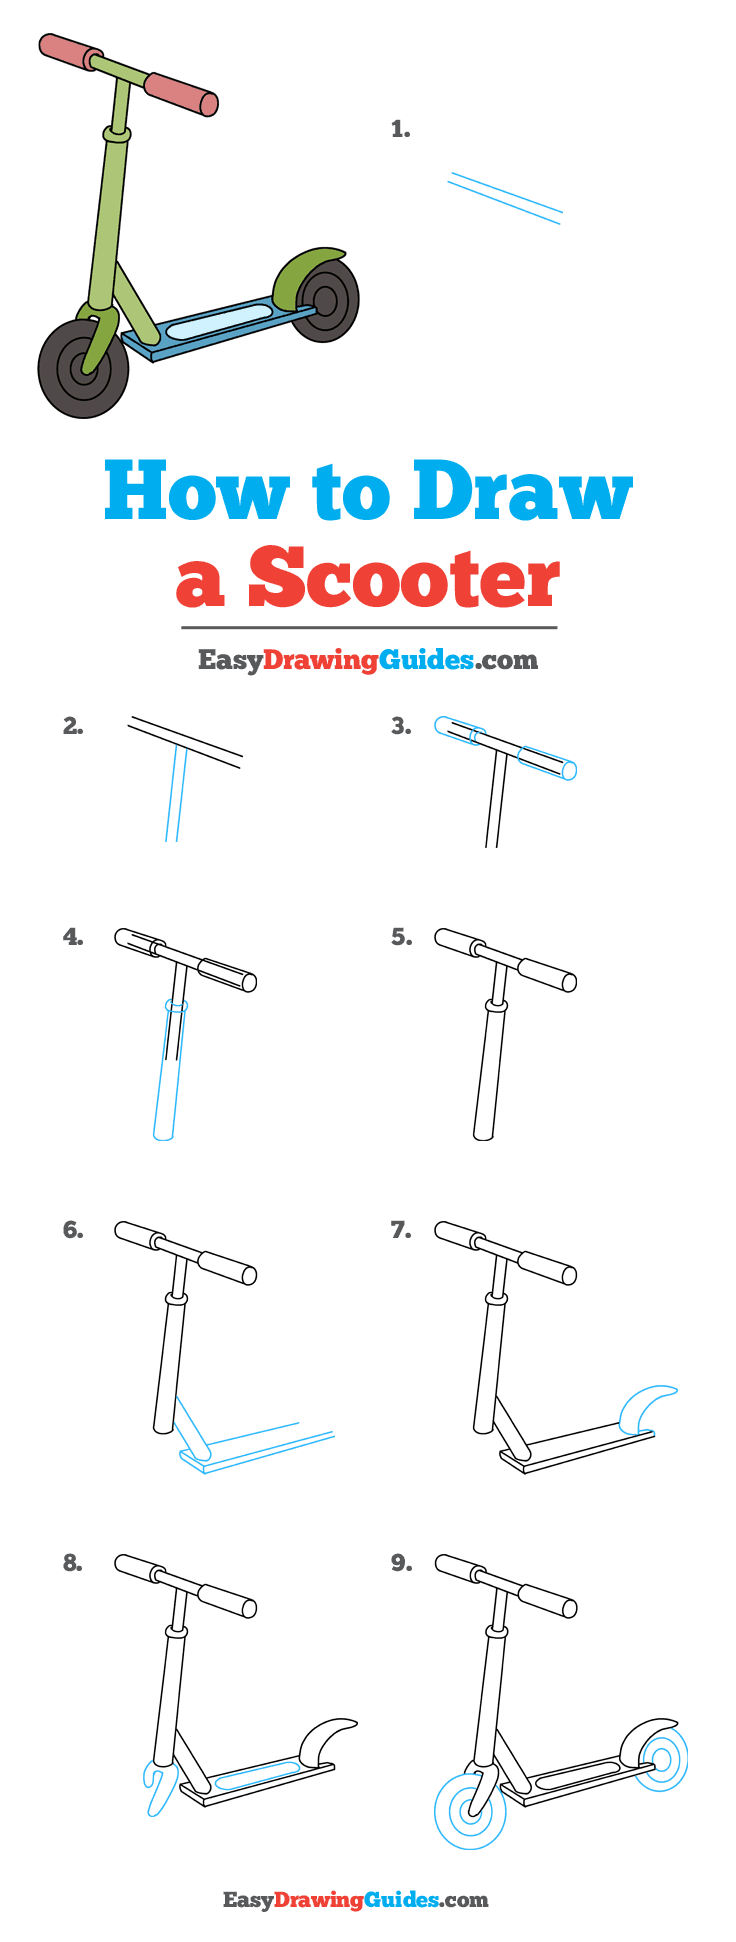 How to Draw a Scooter Step by Step Tutorial Image